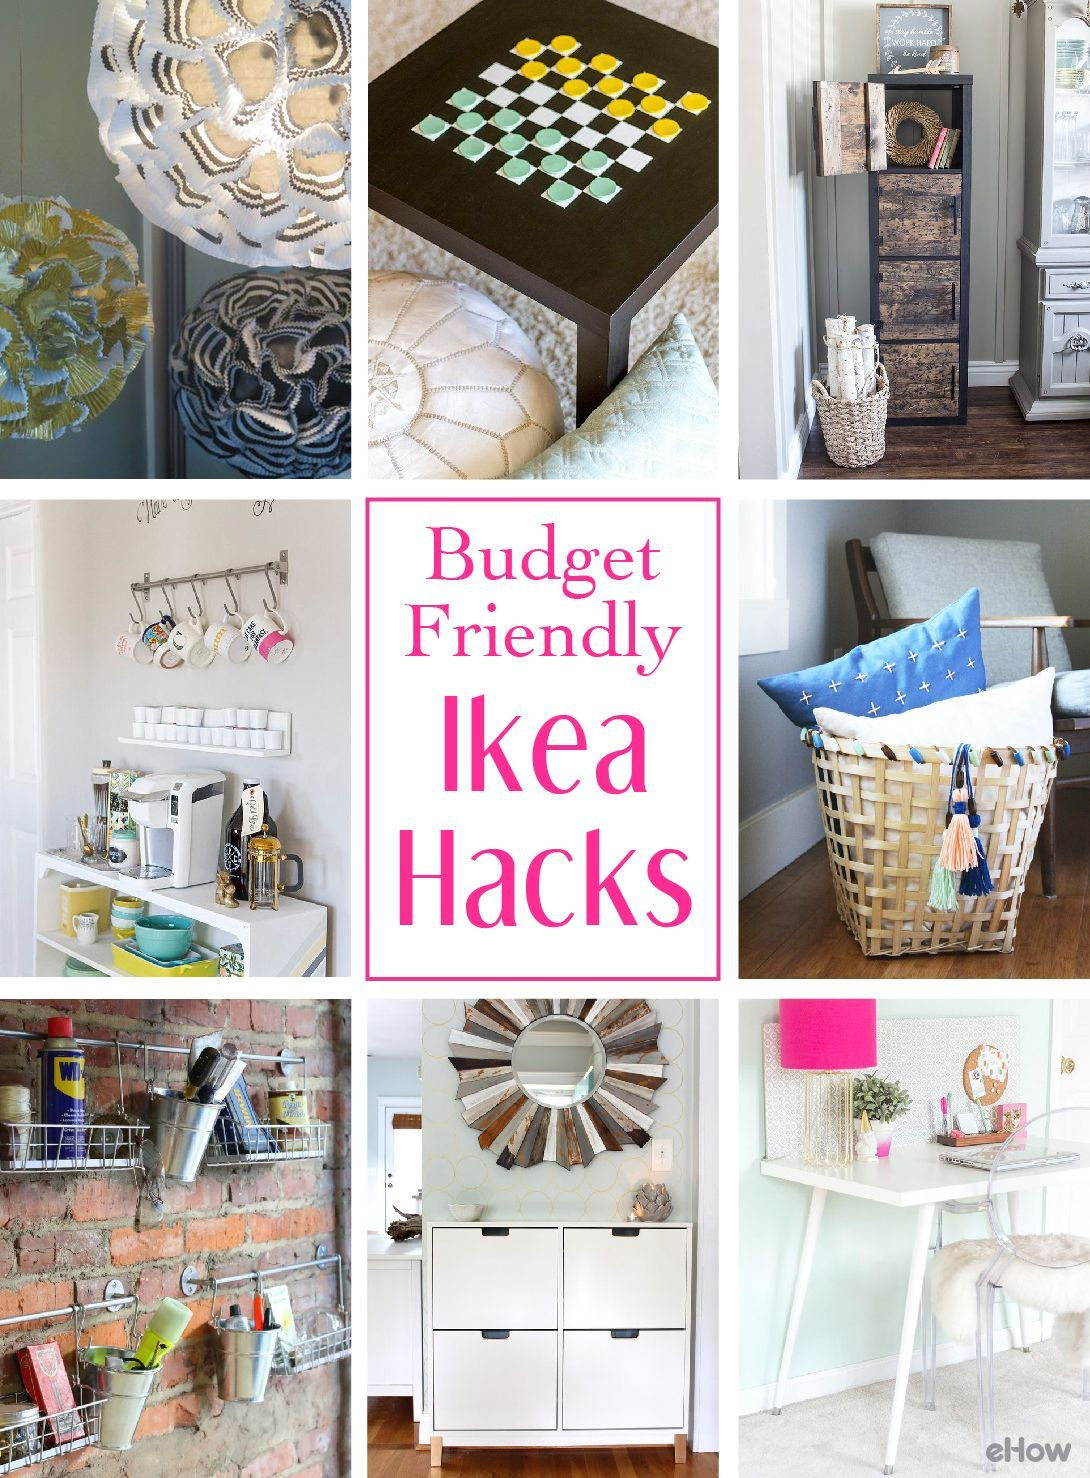 Budget Friendly Diy Home Decorating Ideas Tutorials 2017: 8 Budget-Friendly Ikea Hacks Your Home Needs Right Now